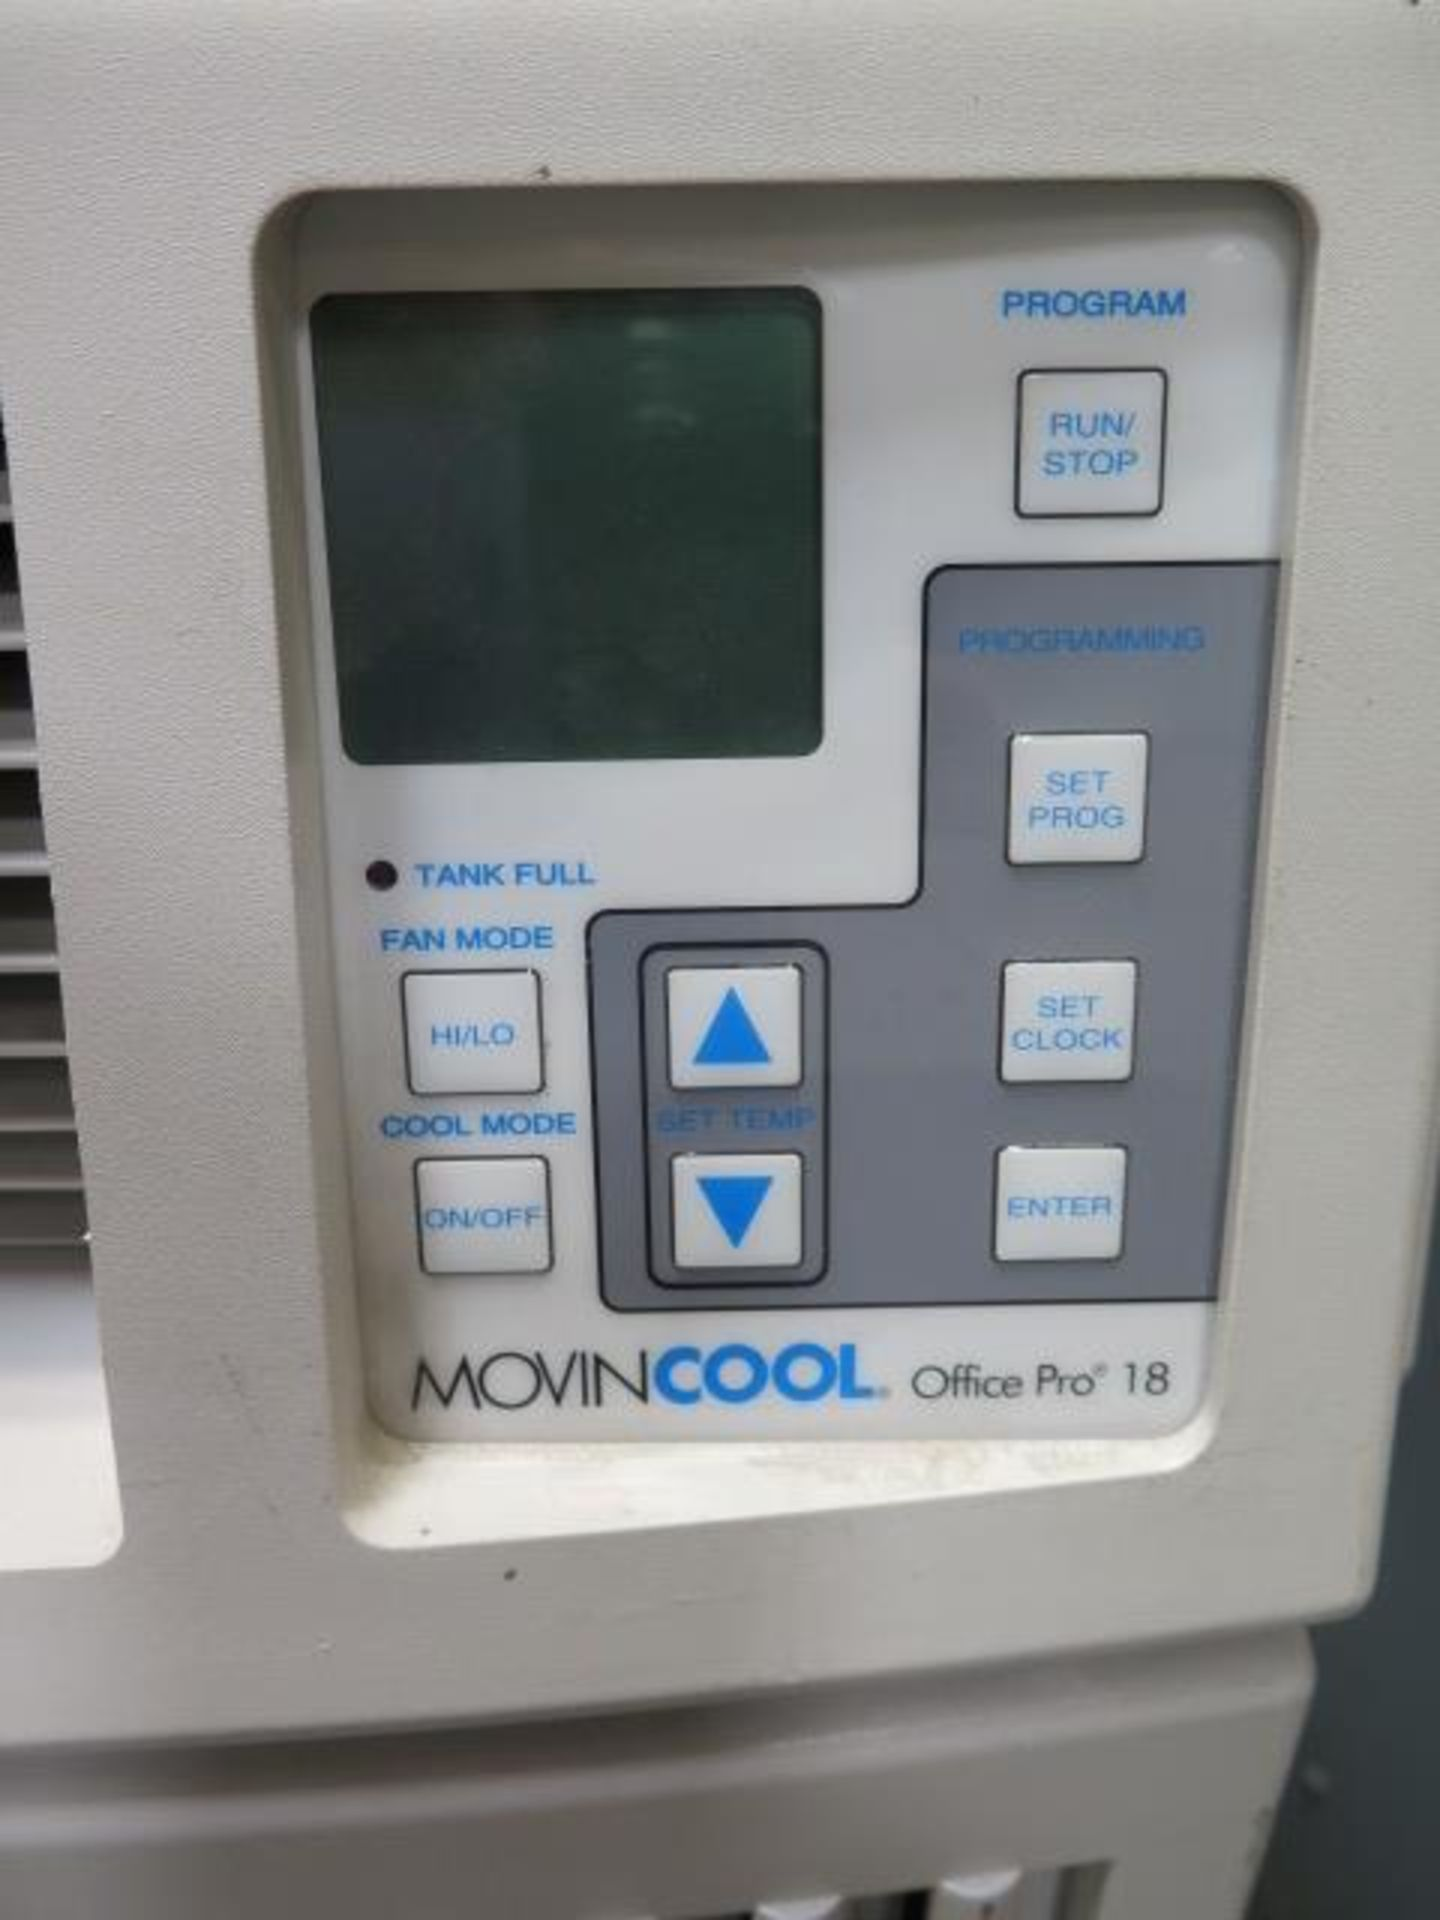 MovinCool Office Pro 18 Portable AC Unit (SOLD AS-IS - NO WARRANTY) - Image 4 of 6